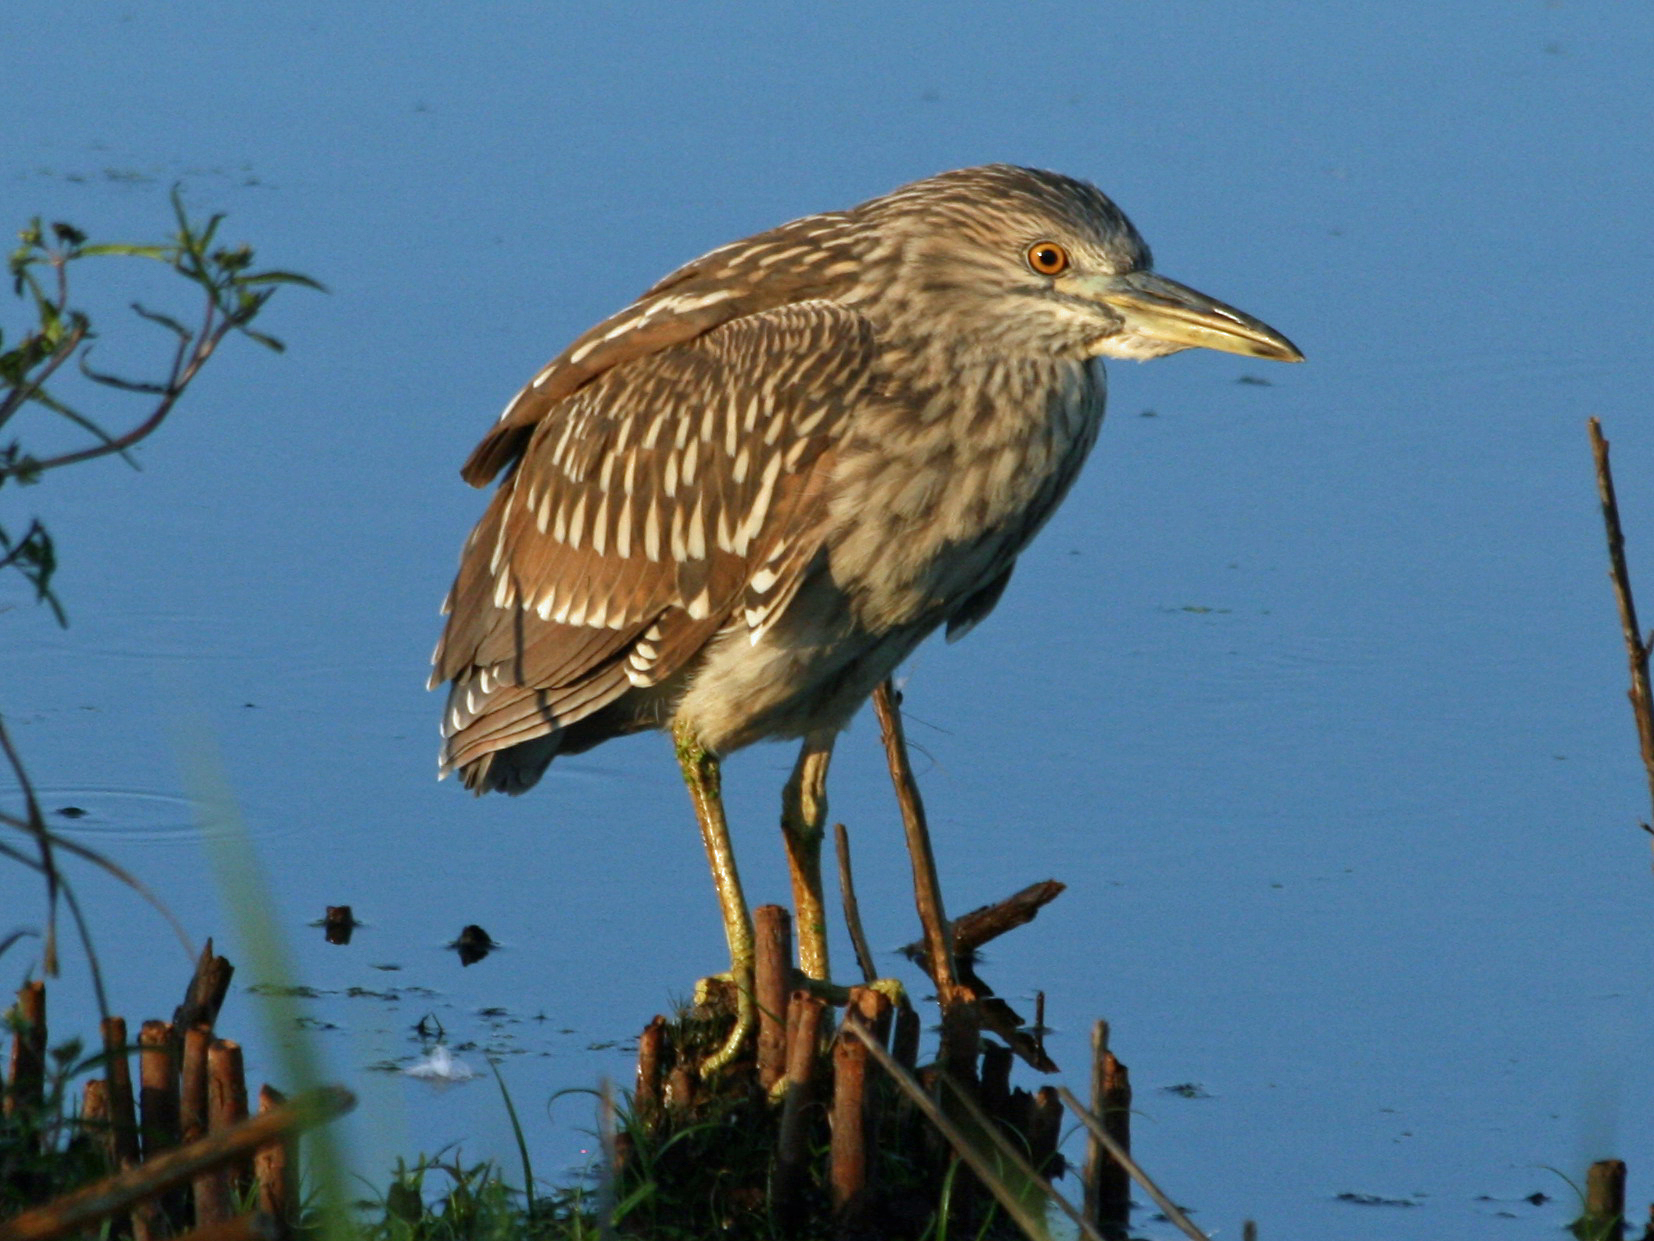 black-crowned_night_heron_nycticorax_nycticorax_rwd1.jpg